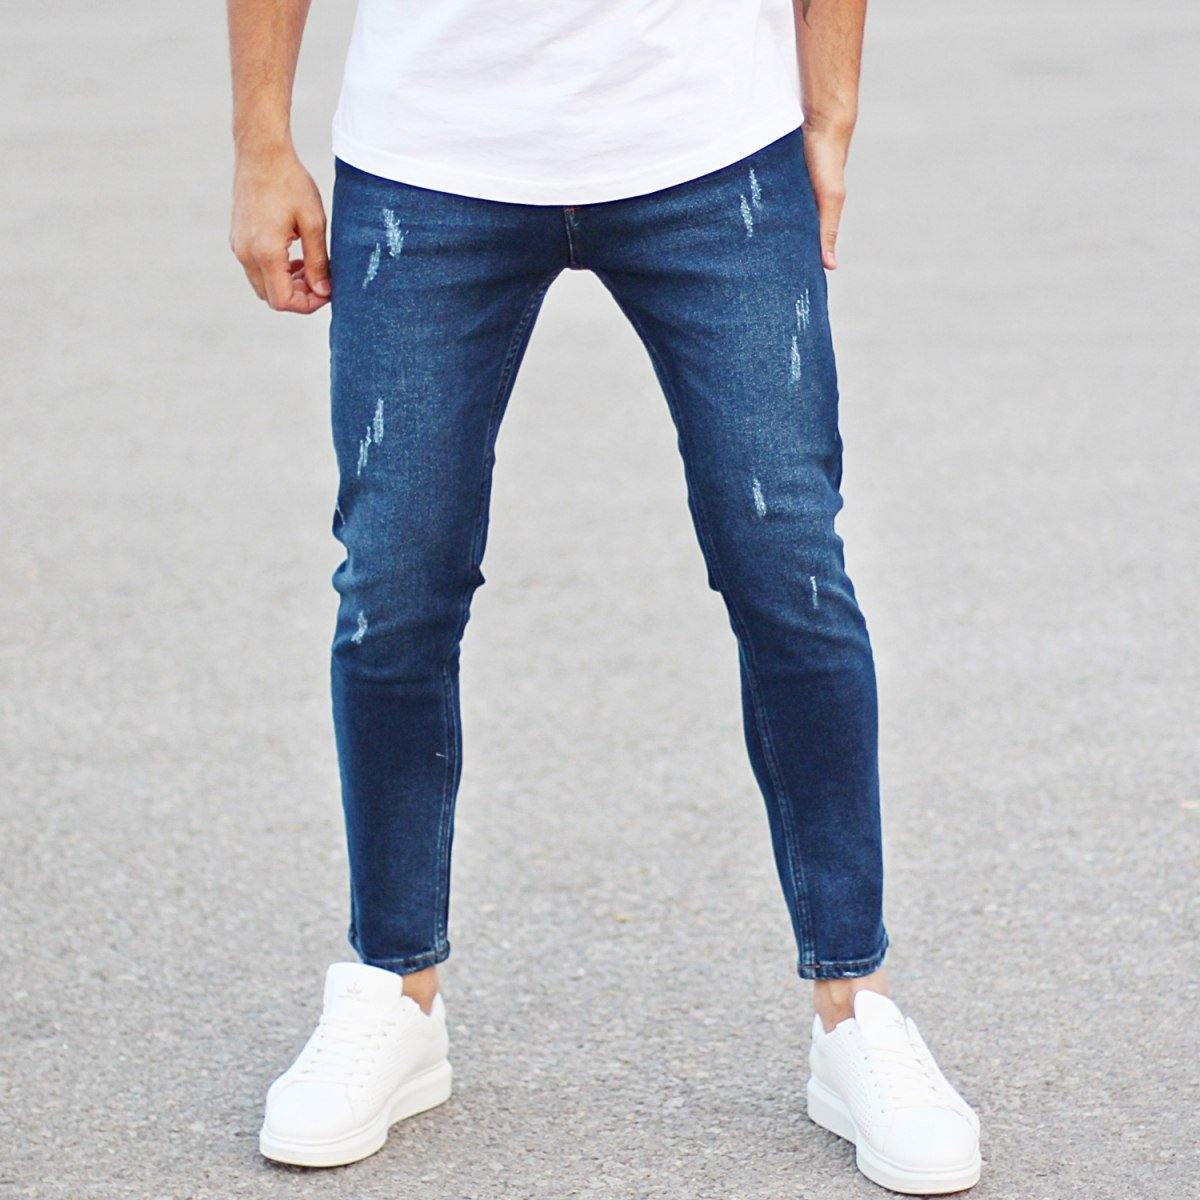 Men's Fashion Jeans With Rips Dark Blue